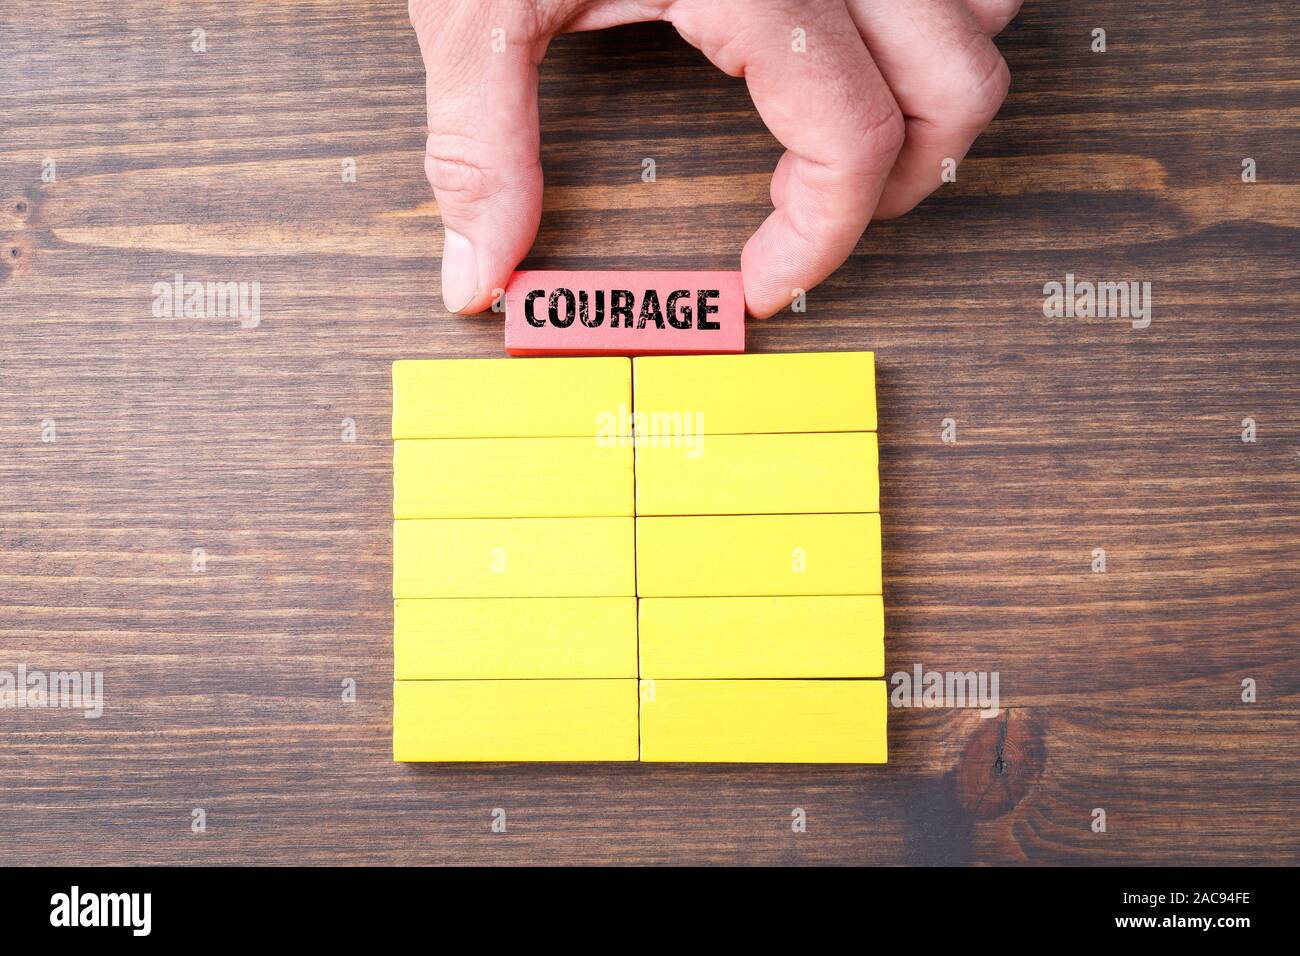 Courage. Leadership, responsibility, inspiration and motivation concept. Colorful Wooden Blocks Stock Photo